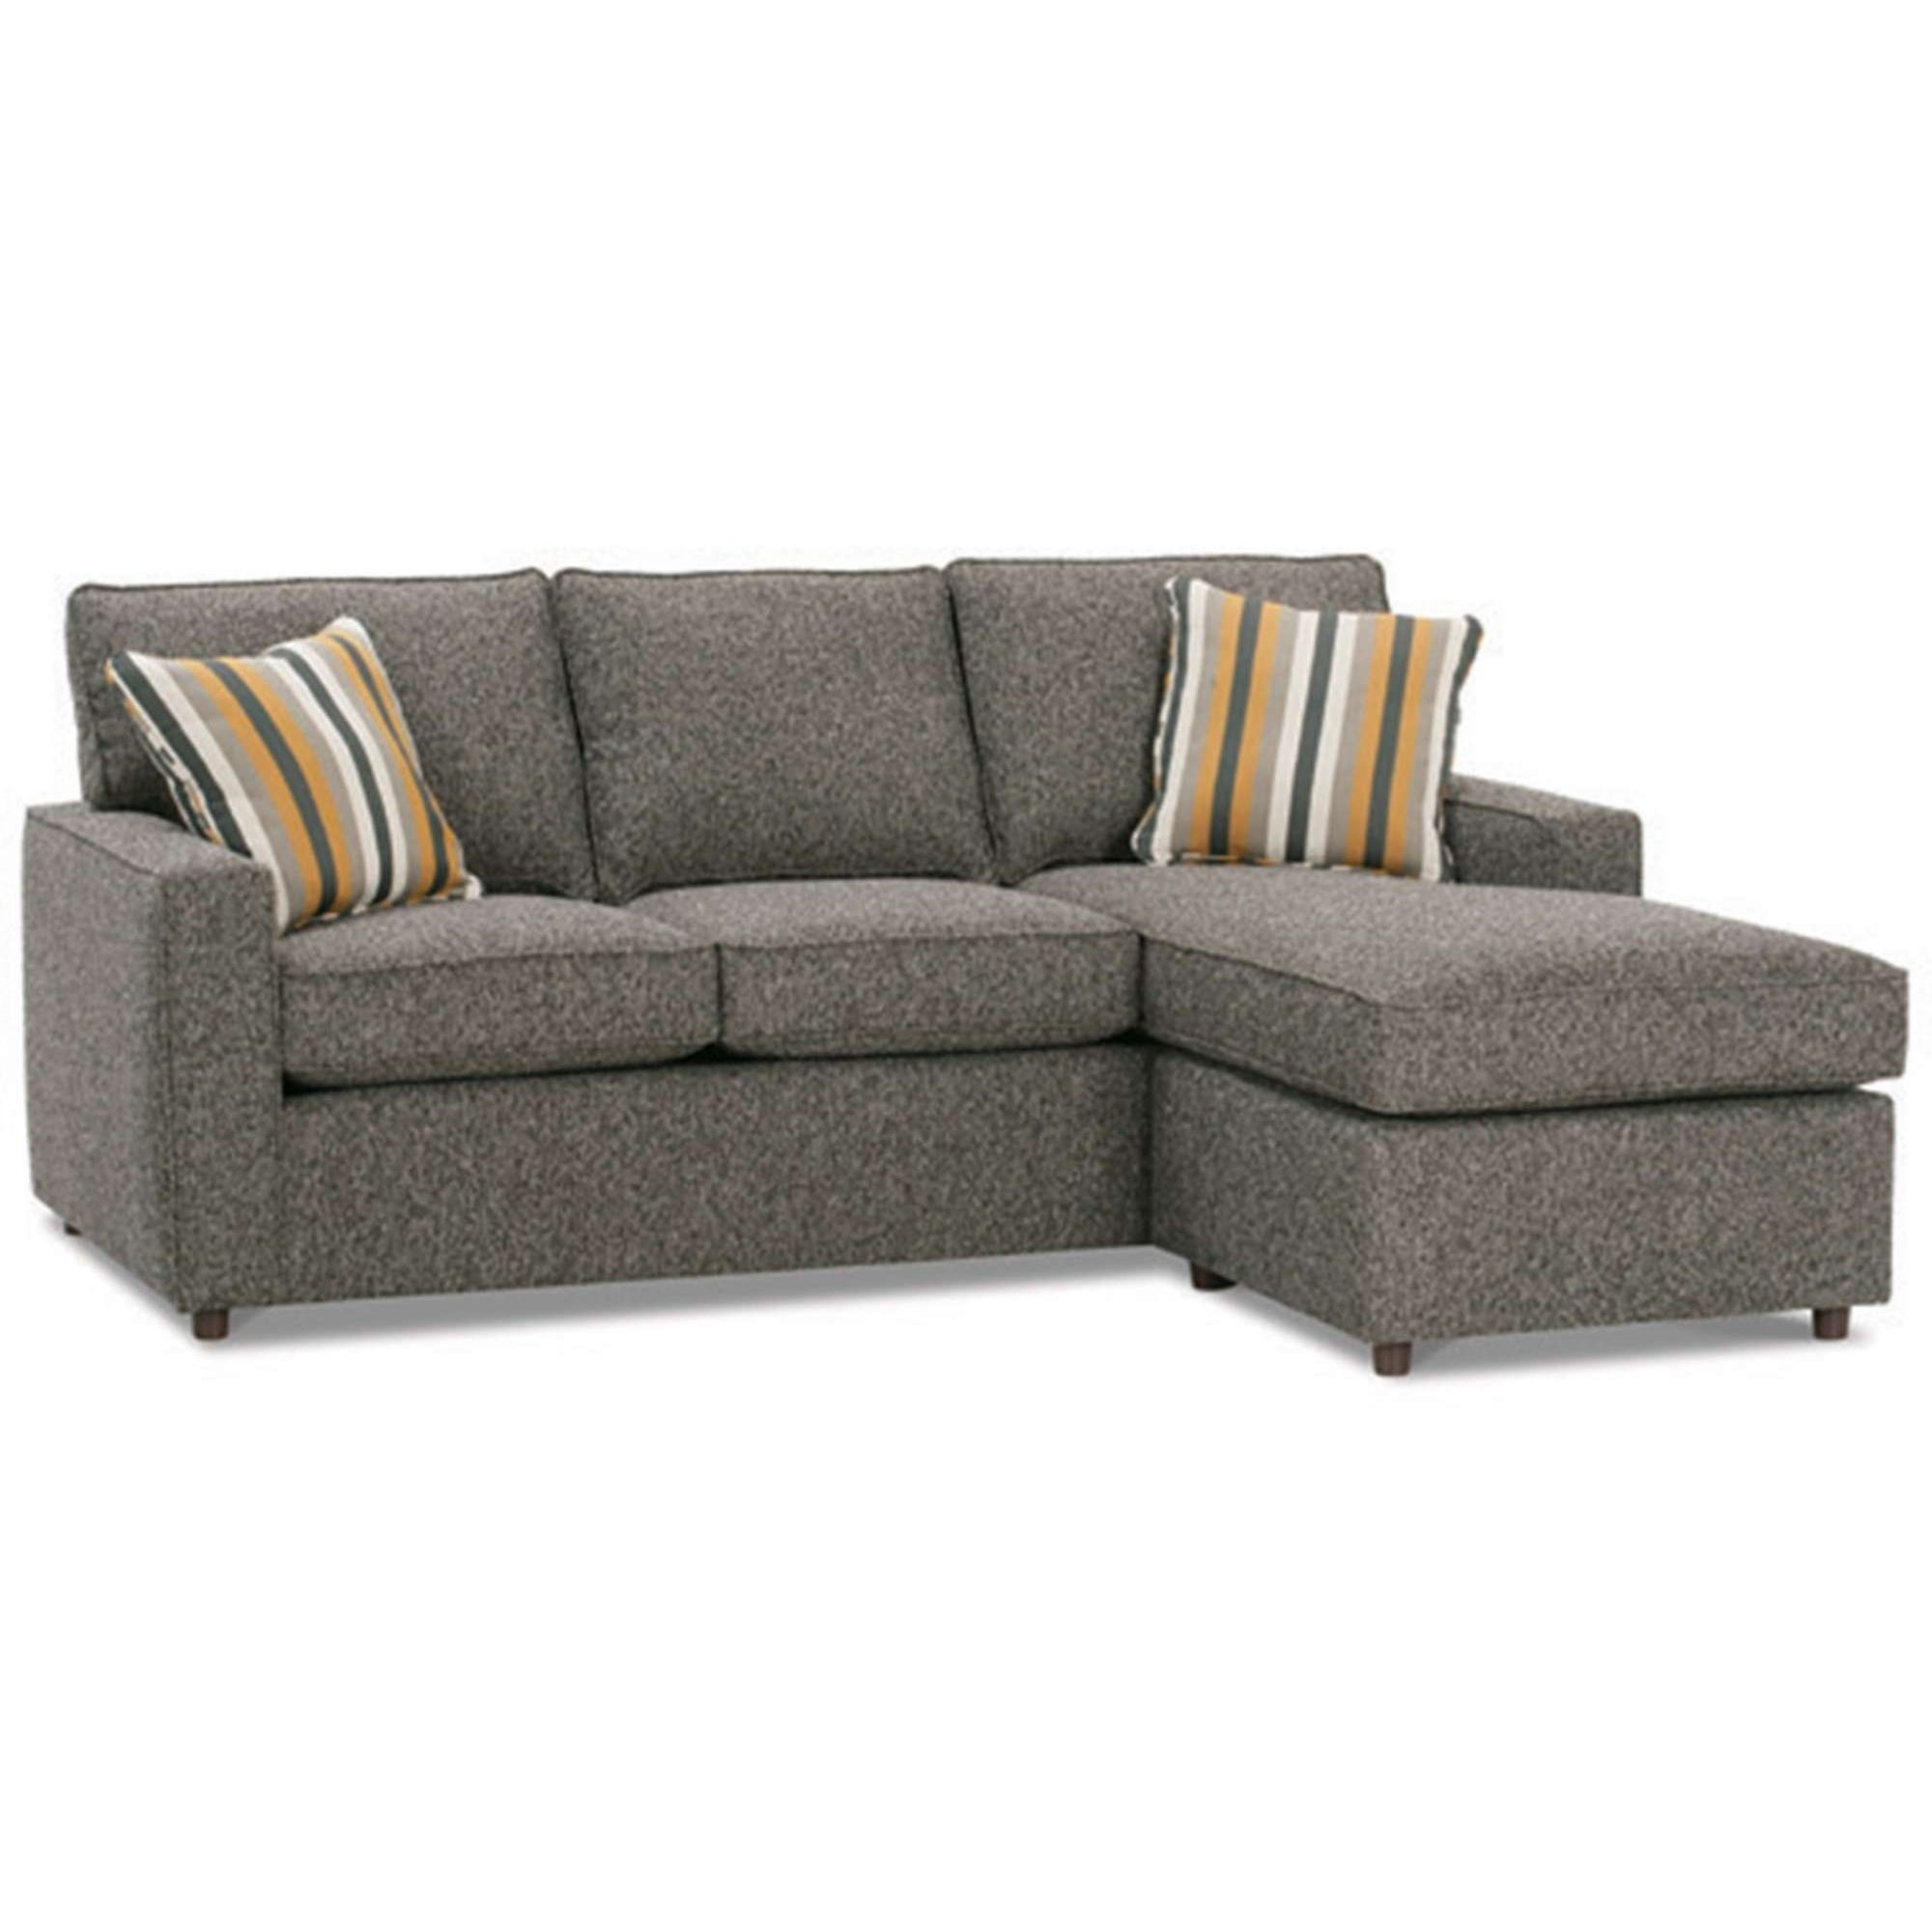 Monaco Transitional Sofa with Chaise by Rowe at Bullard Furniture